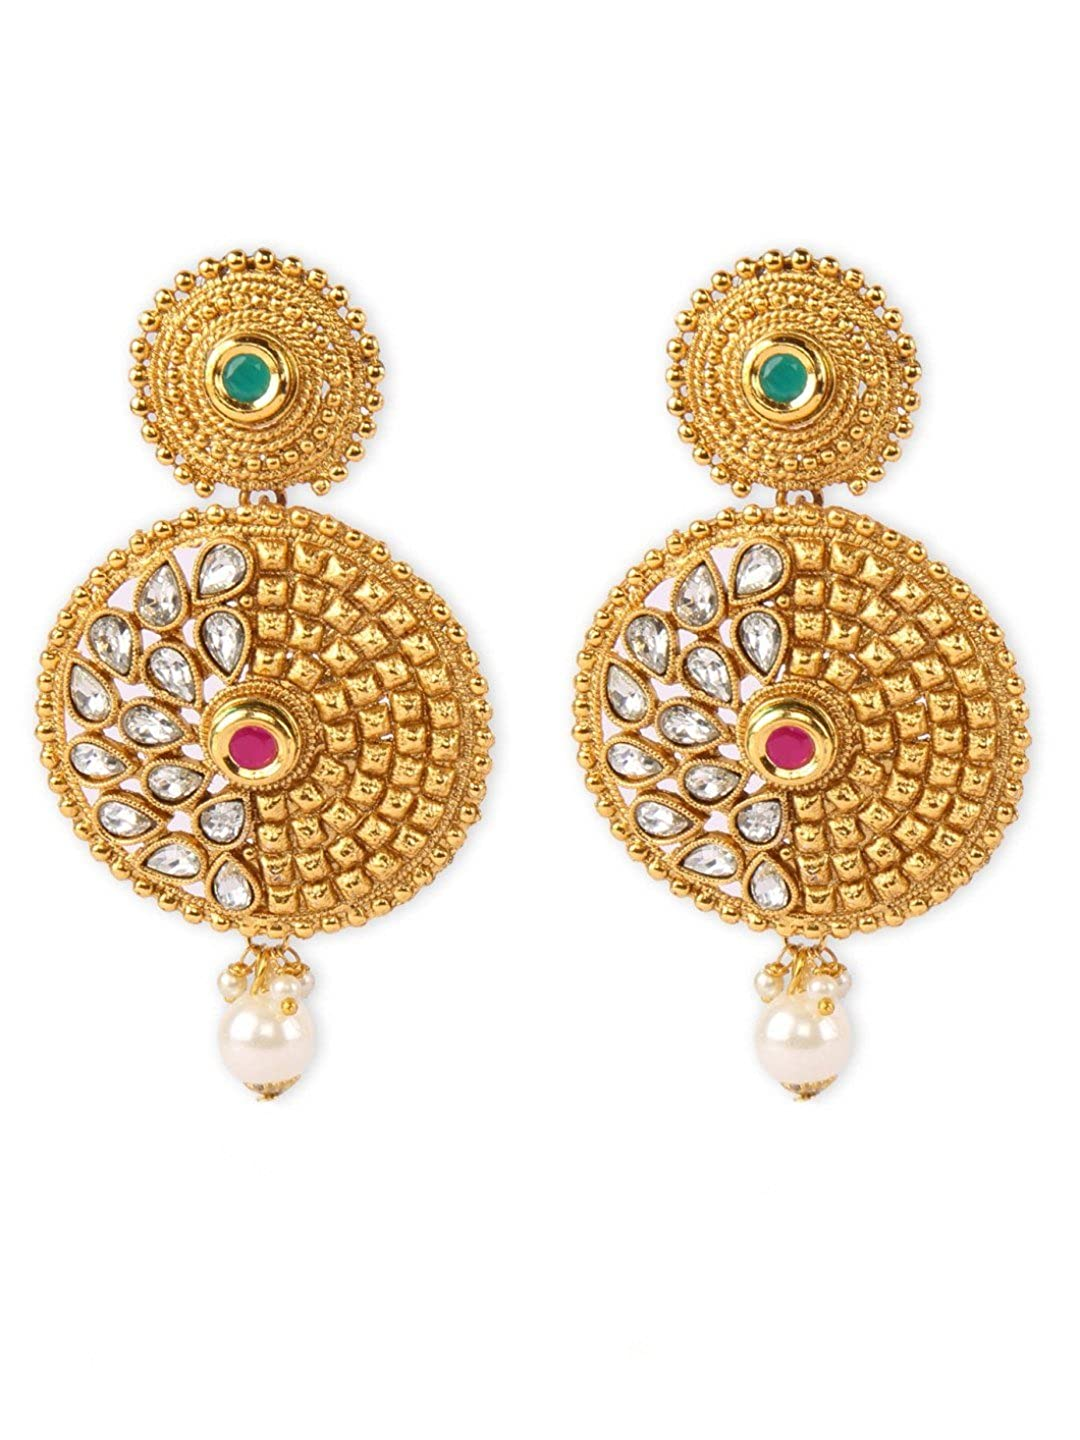 Crunchy Fashion Bollywood Style Stylish Traditional Indian Jewelry Drop Earrings for Women /& Girls